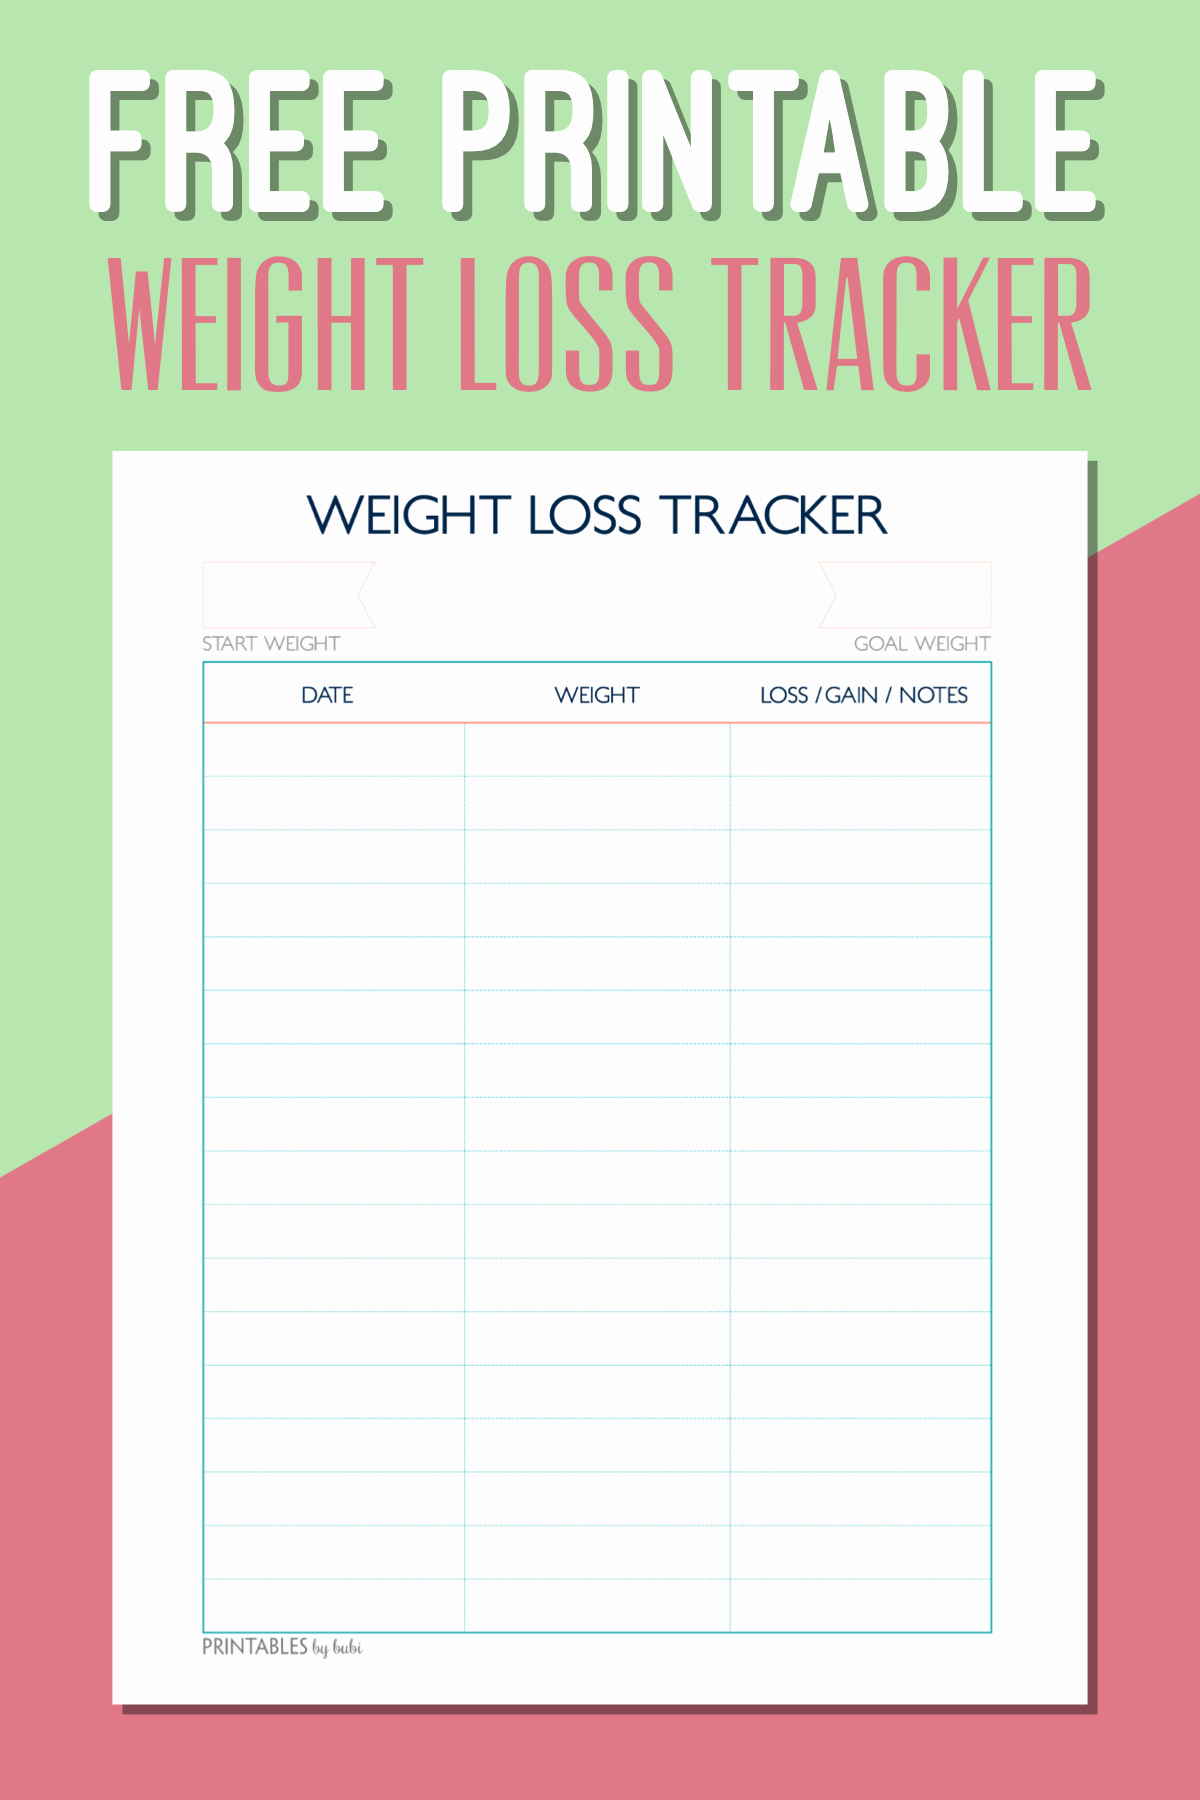 Free Printable Weight Loss Tracker Unique Free Printable Weight Loss Tracker – Instant Download Pdf